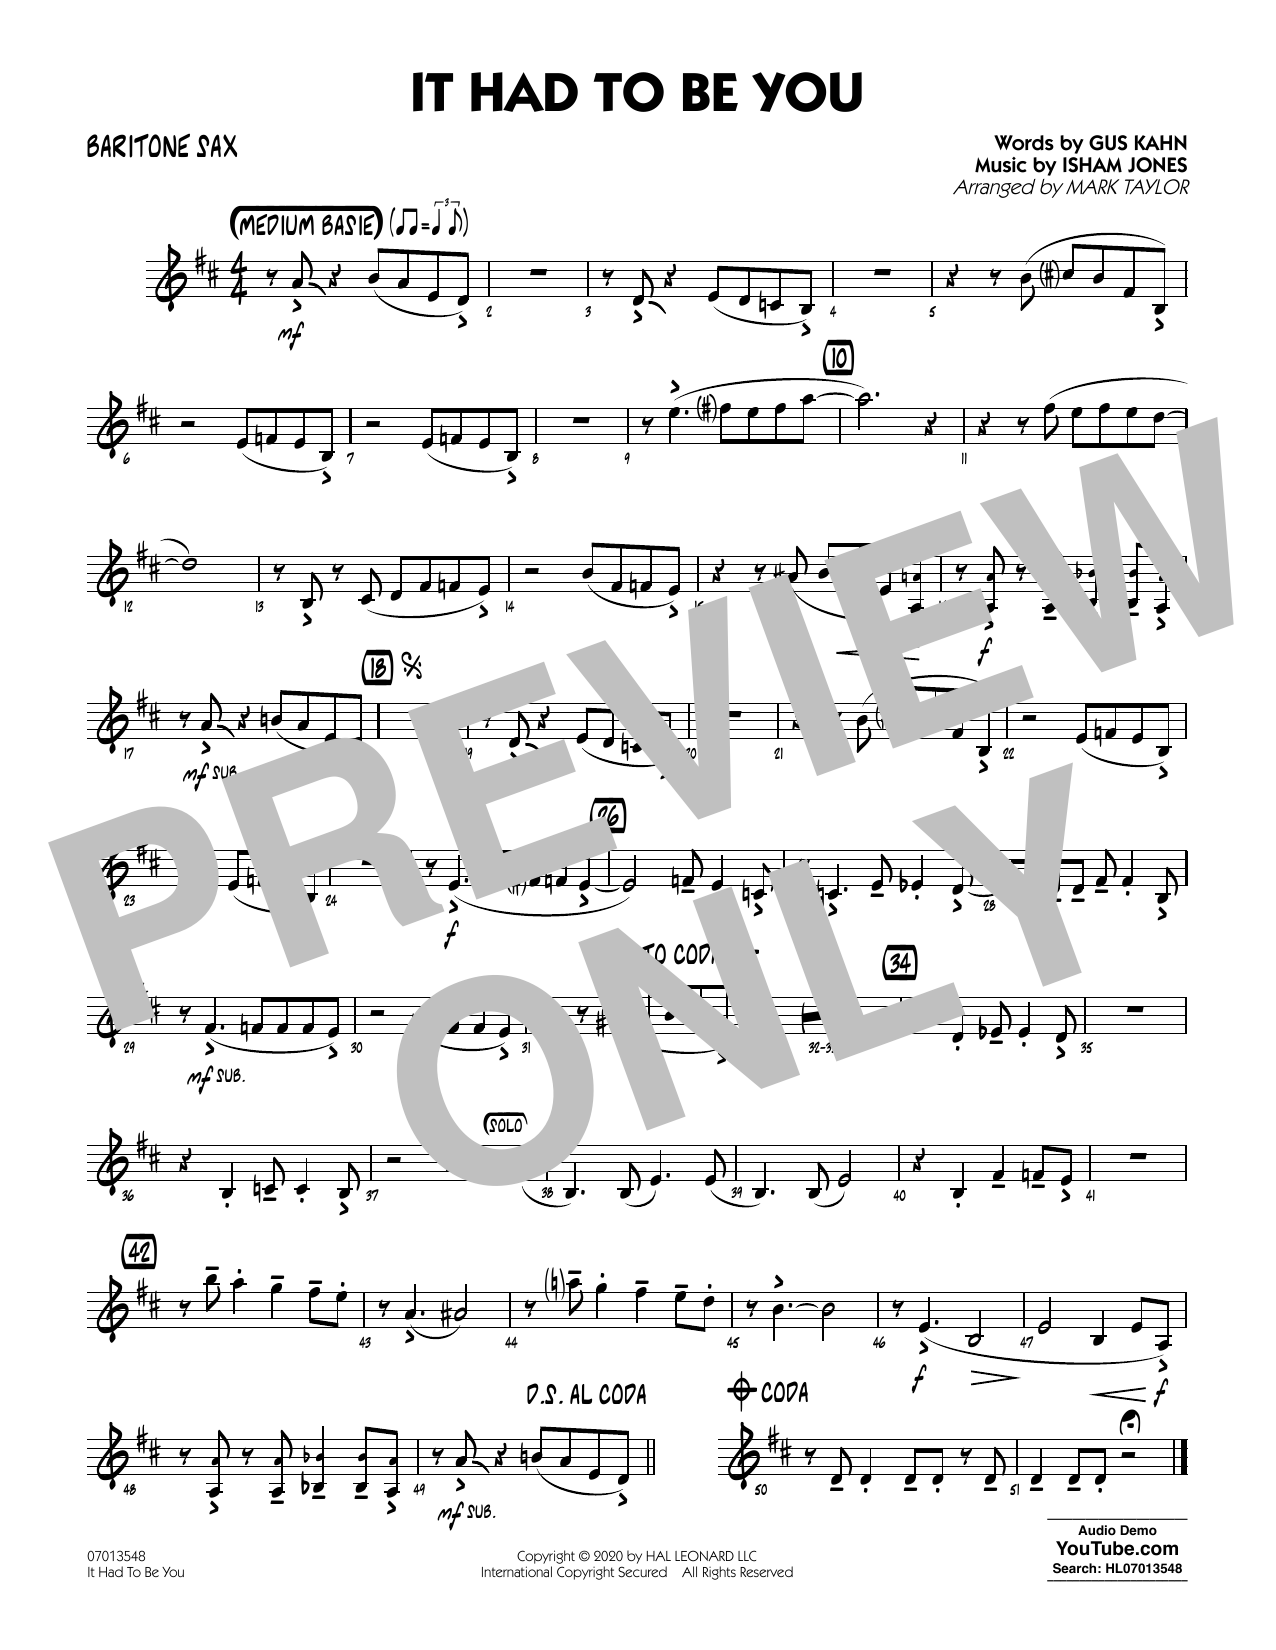 It Had to Be You (arr. Mark Taylor) - Baritone Sax Sheet Music